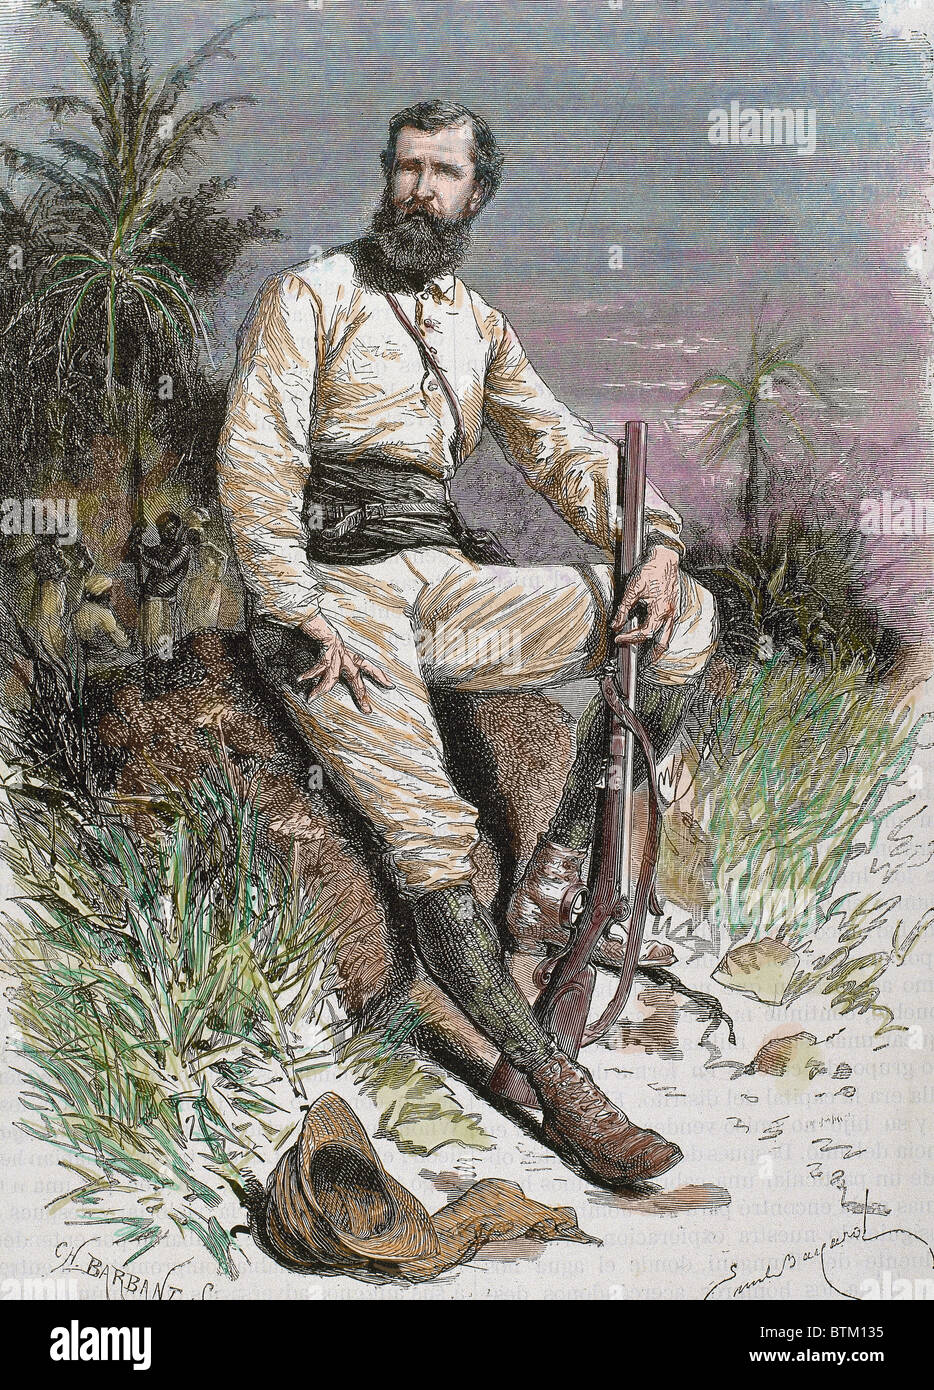 Cameron, Verney Lovett (1844-1894). British traveler and explorer. Engraving by Barbant. Colored. - Stock Image